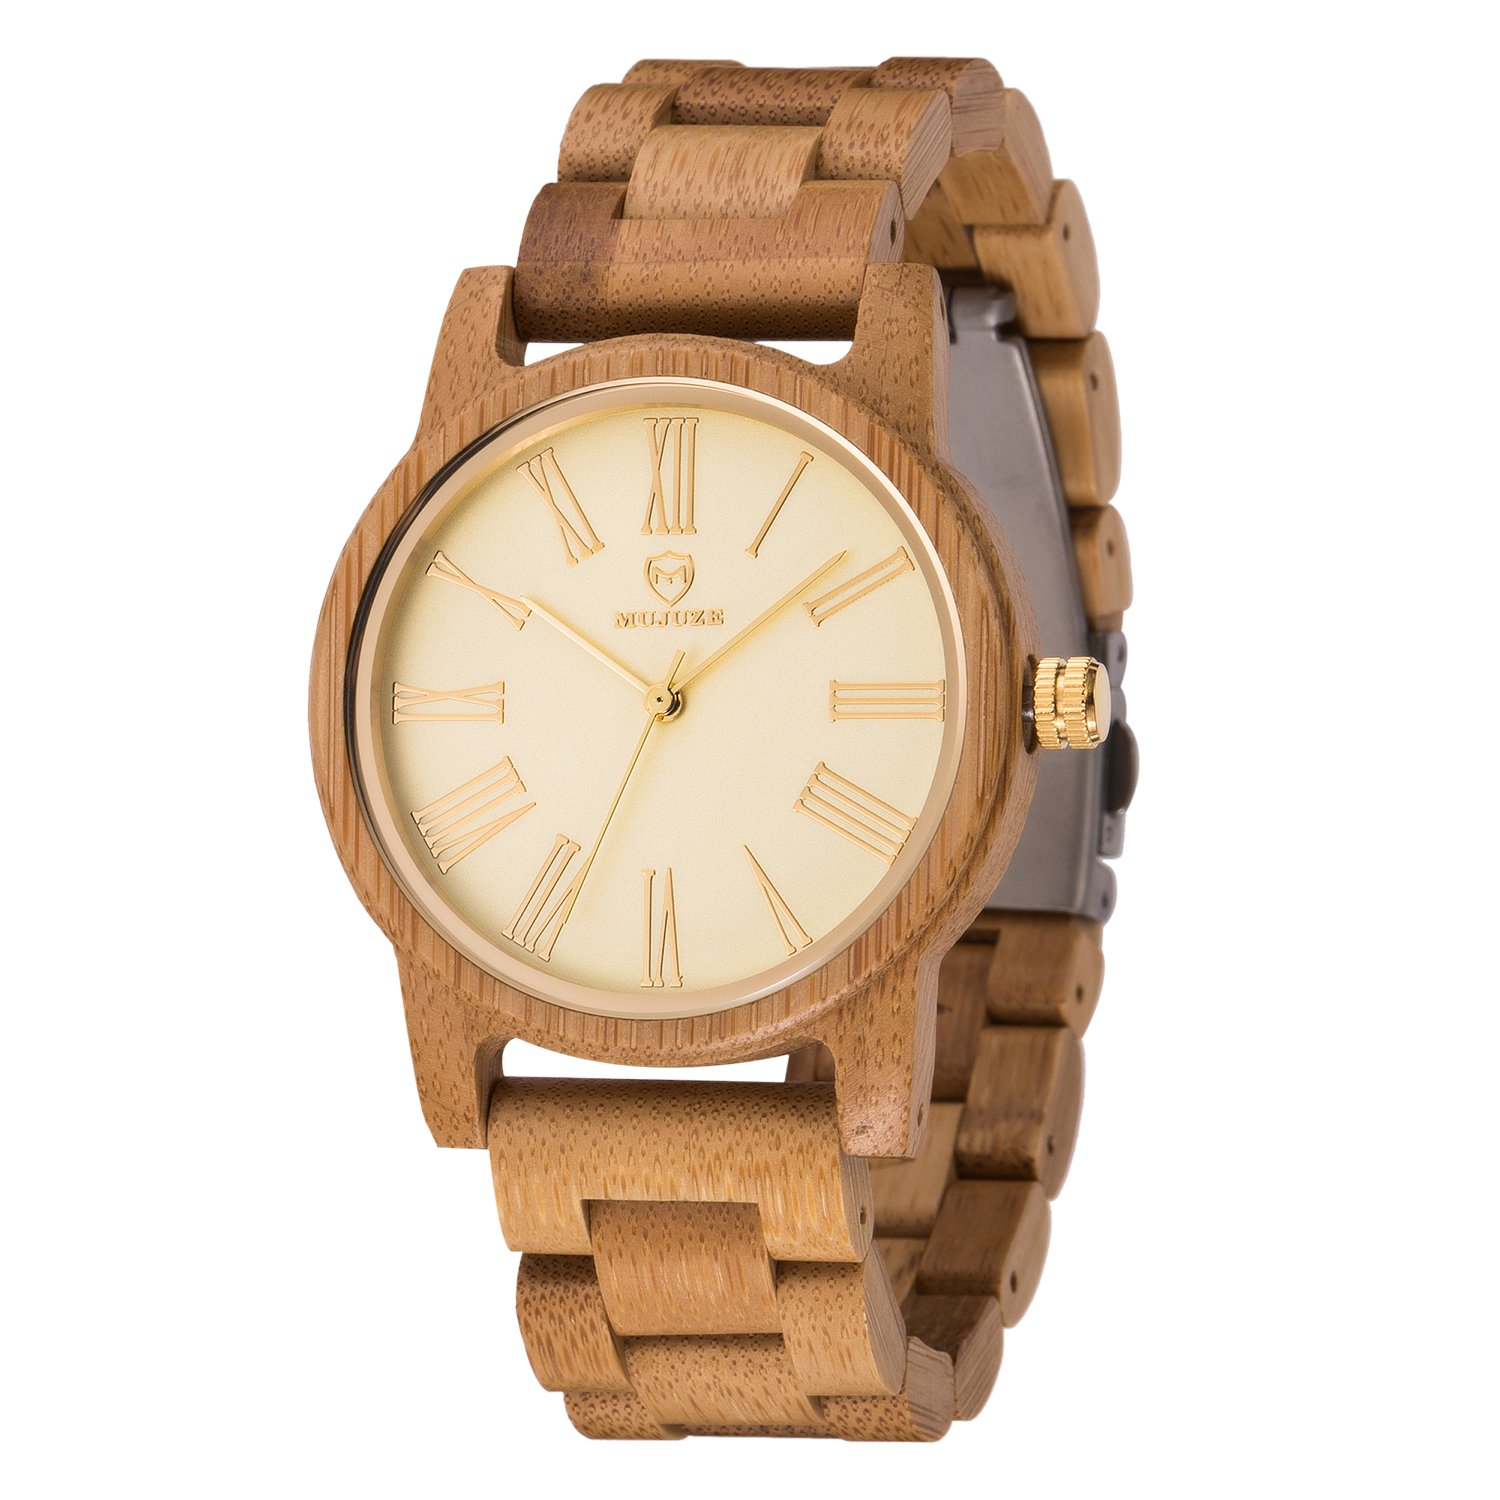 Wooden Watches, ShiLiTech Natural Handmade Vintage Wood Watches Women Gift Watches for Lady